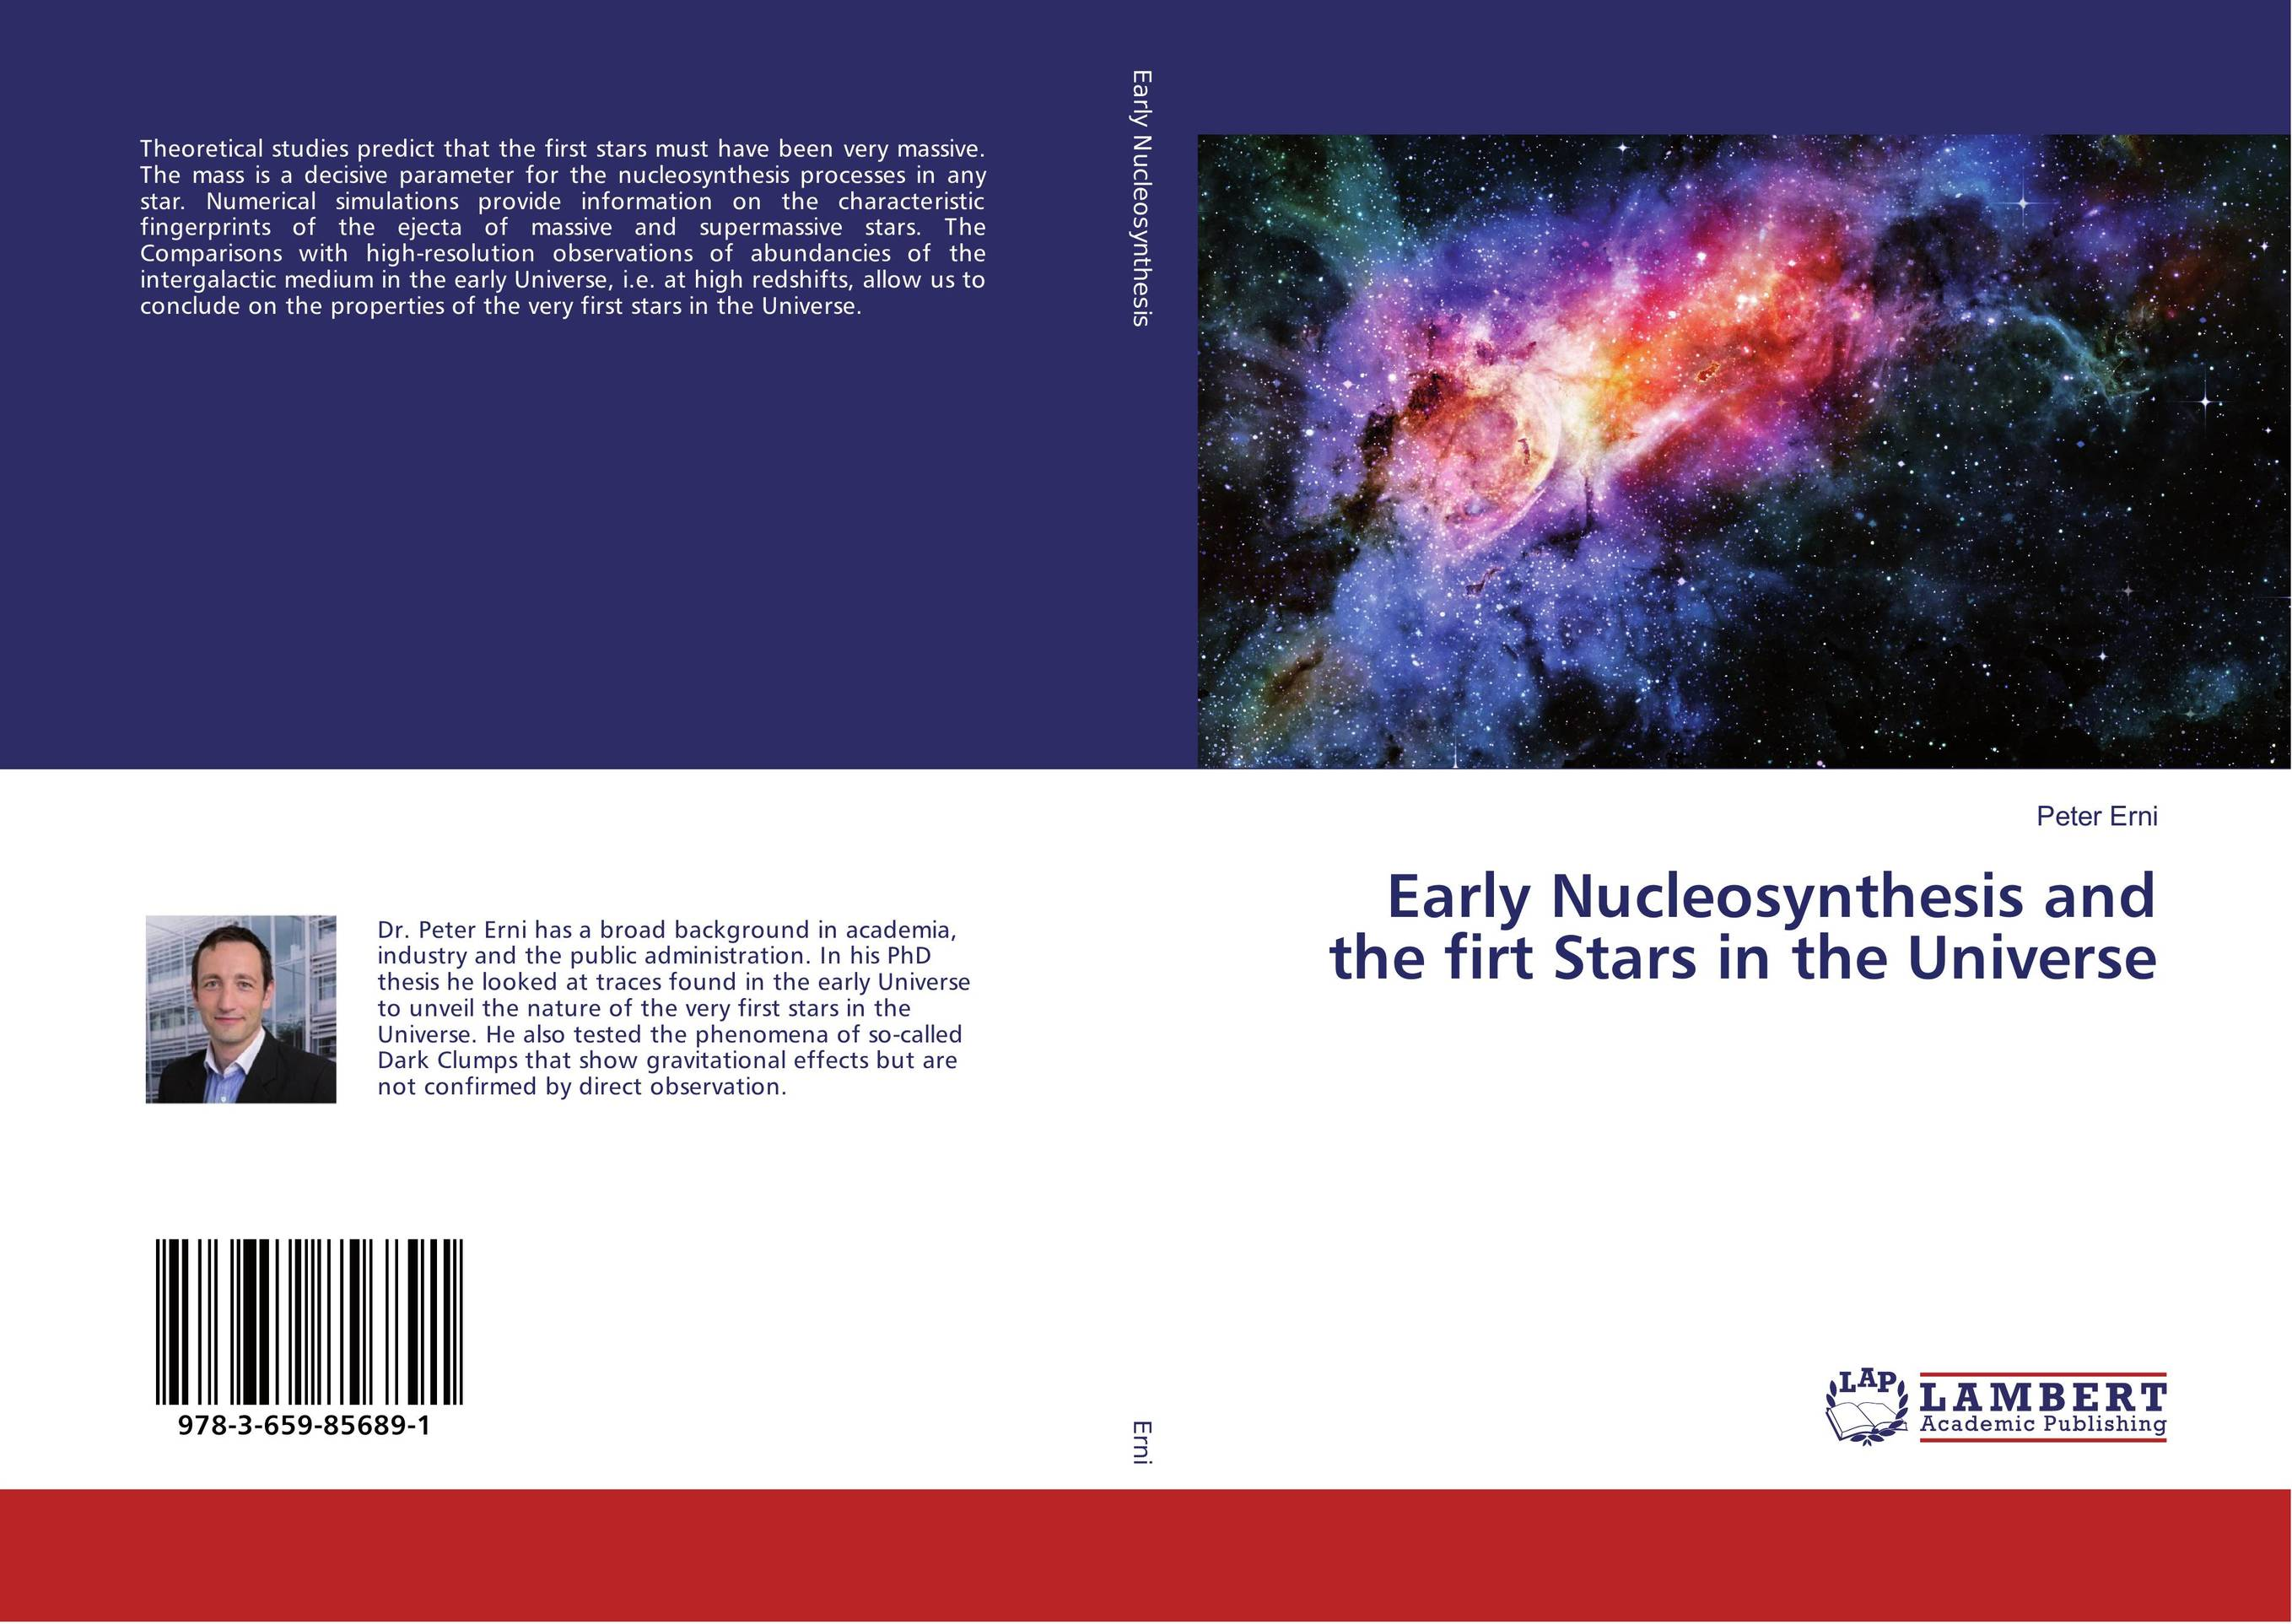 Early Nucleosynthesis and the firt Stars in the Universe masters of the universe